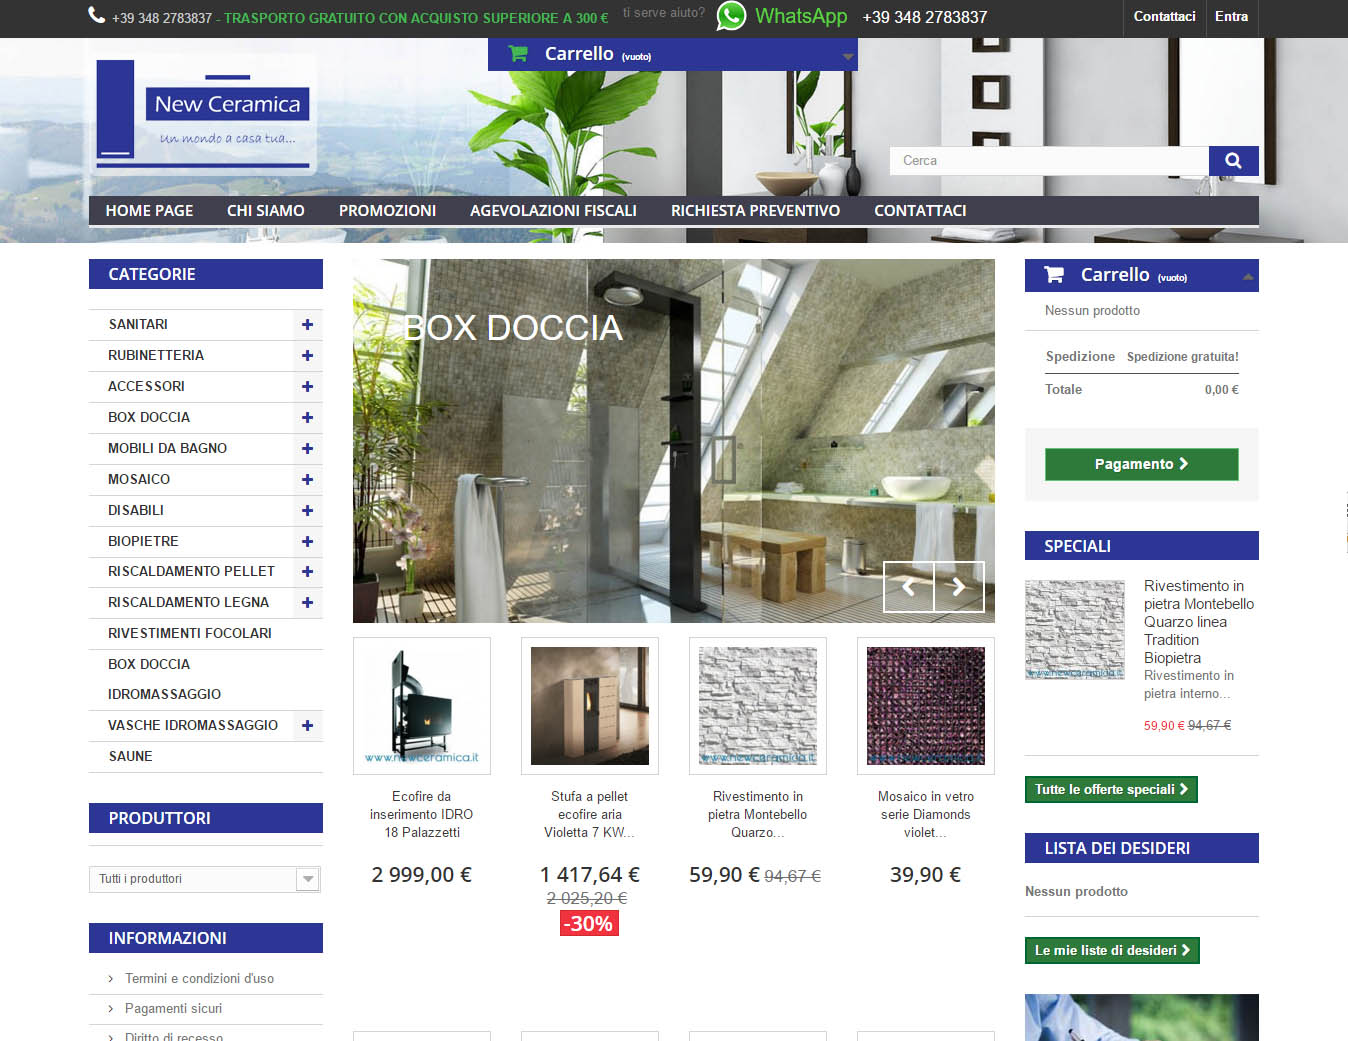 Newceramica website, design and E-commerce devolopment by Marilooweb